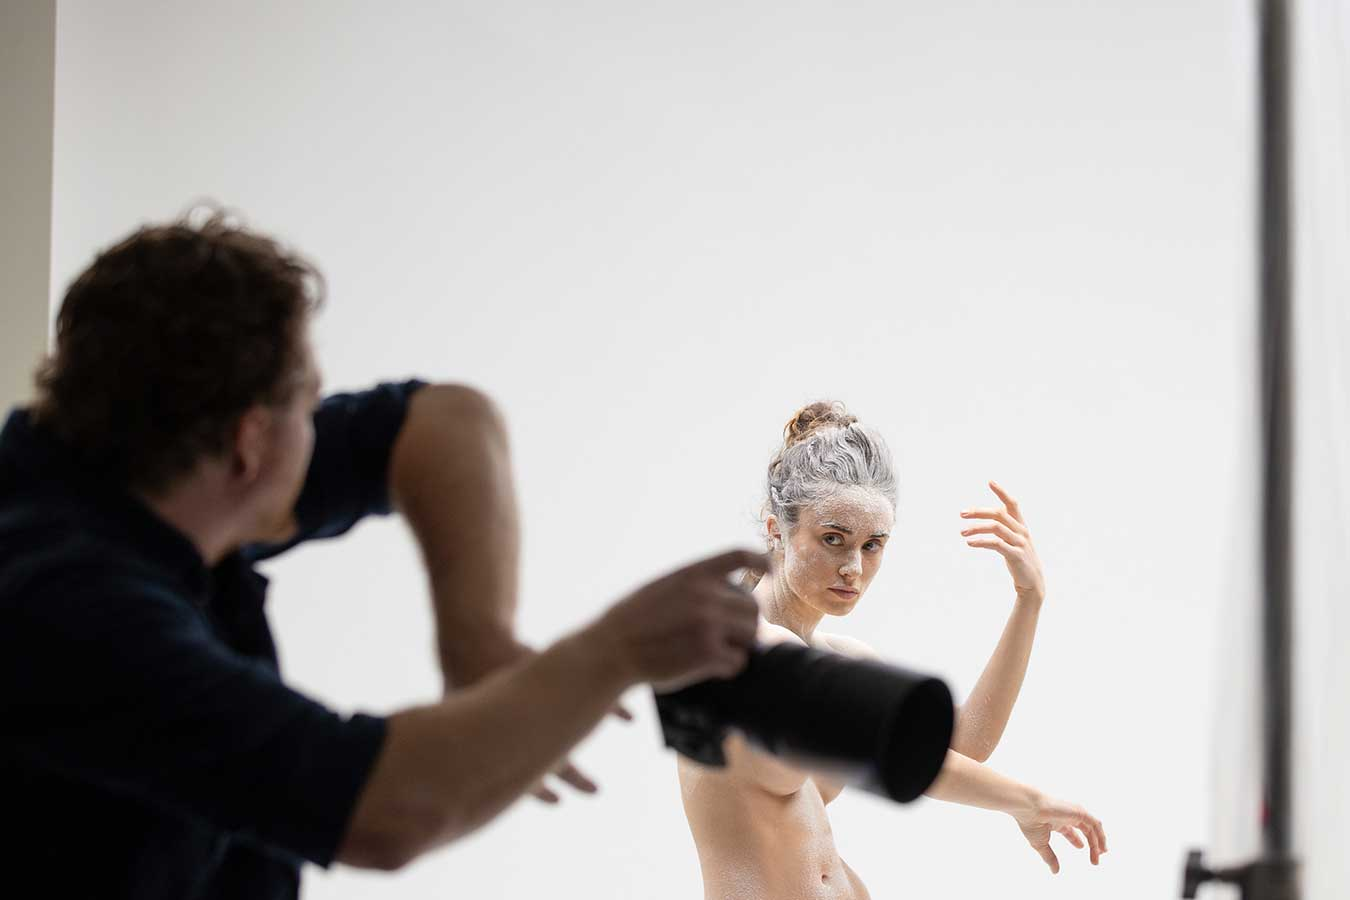 photographer-pedro-greg-directs-dancer-with-gesture